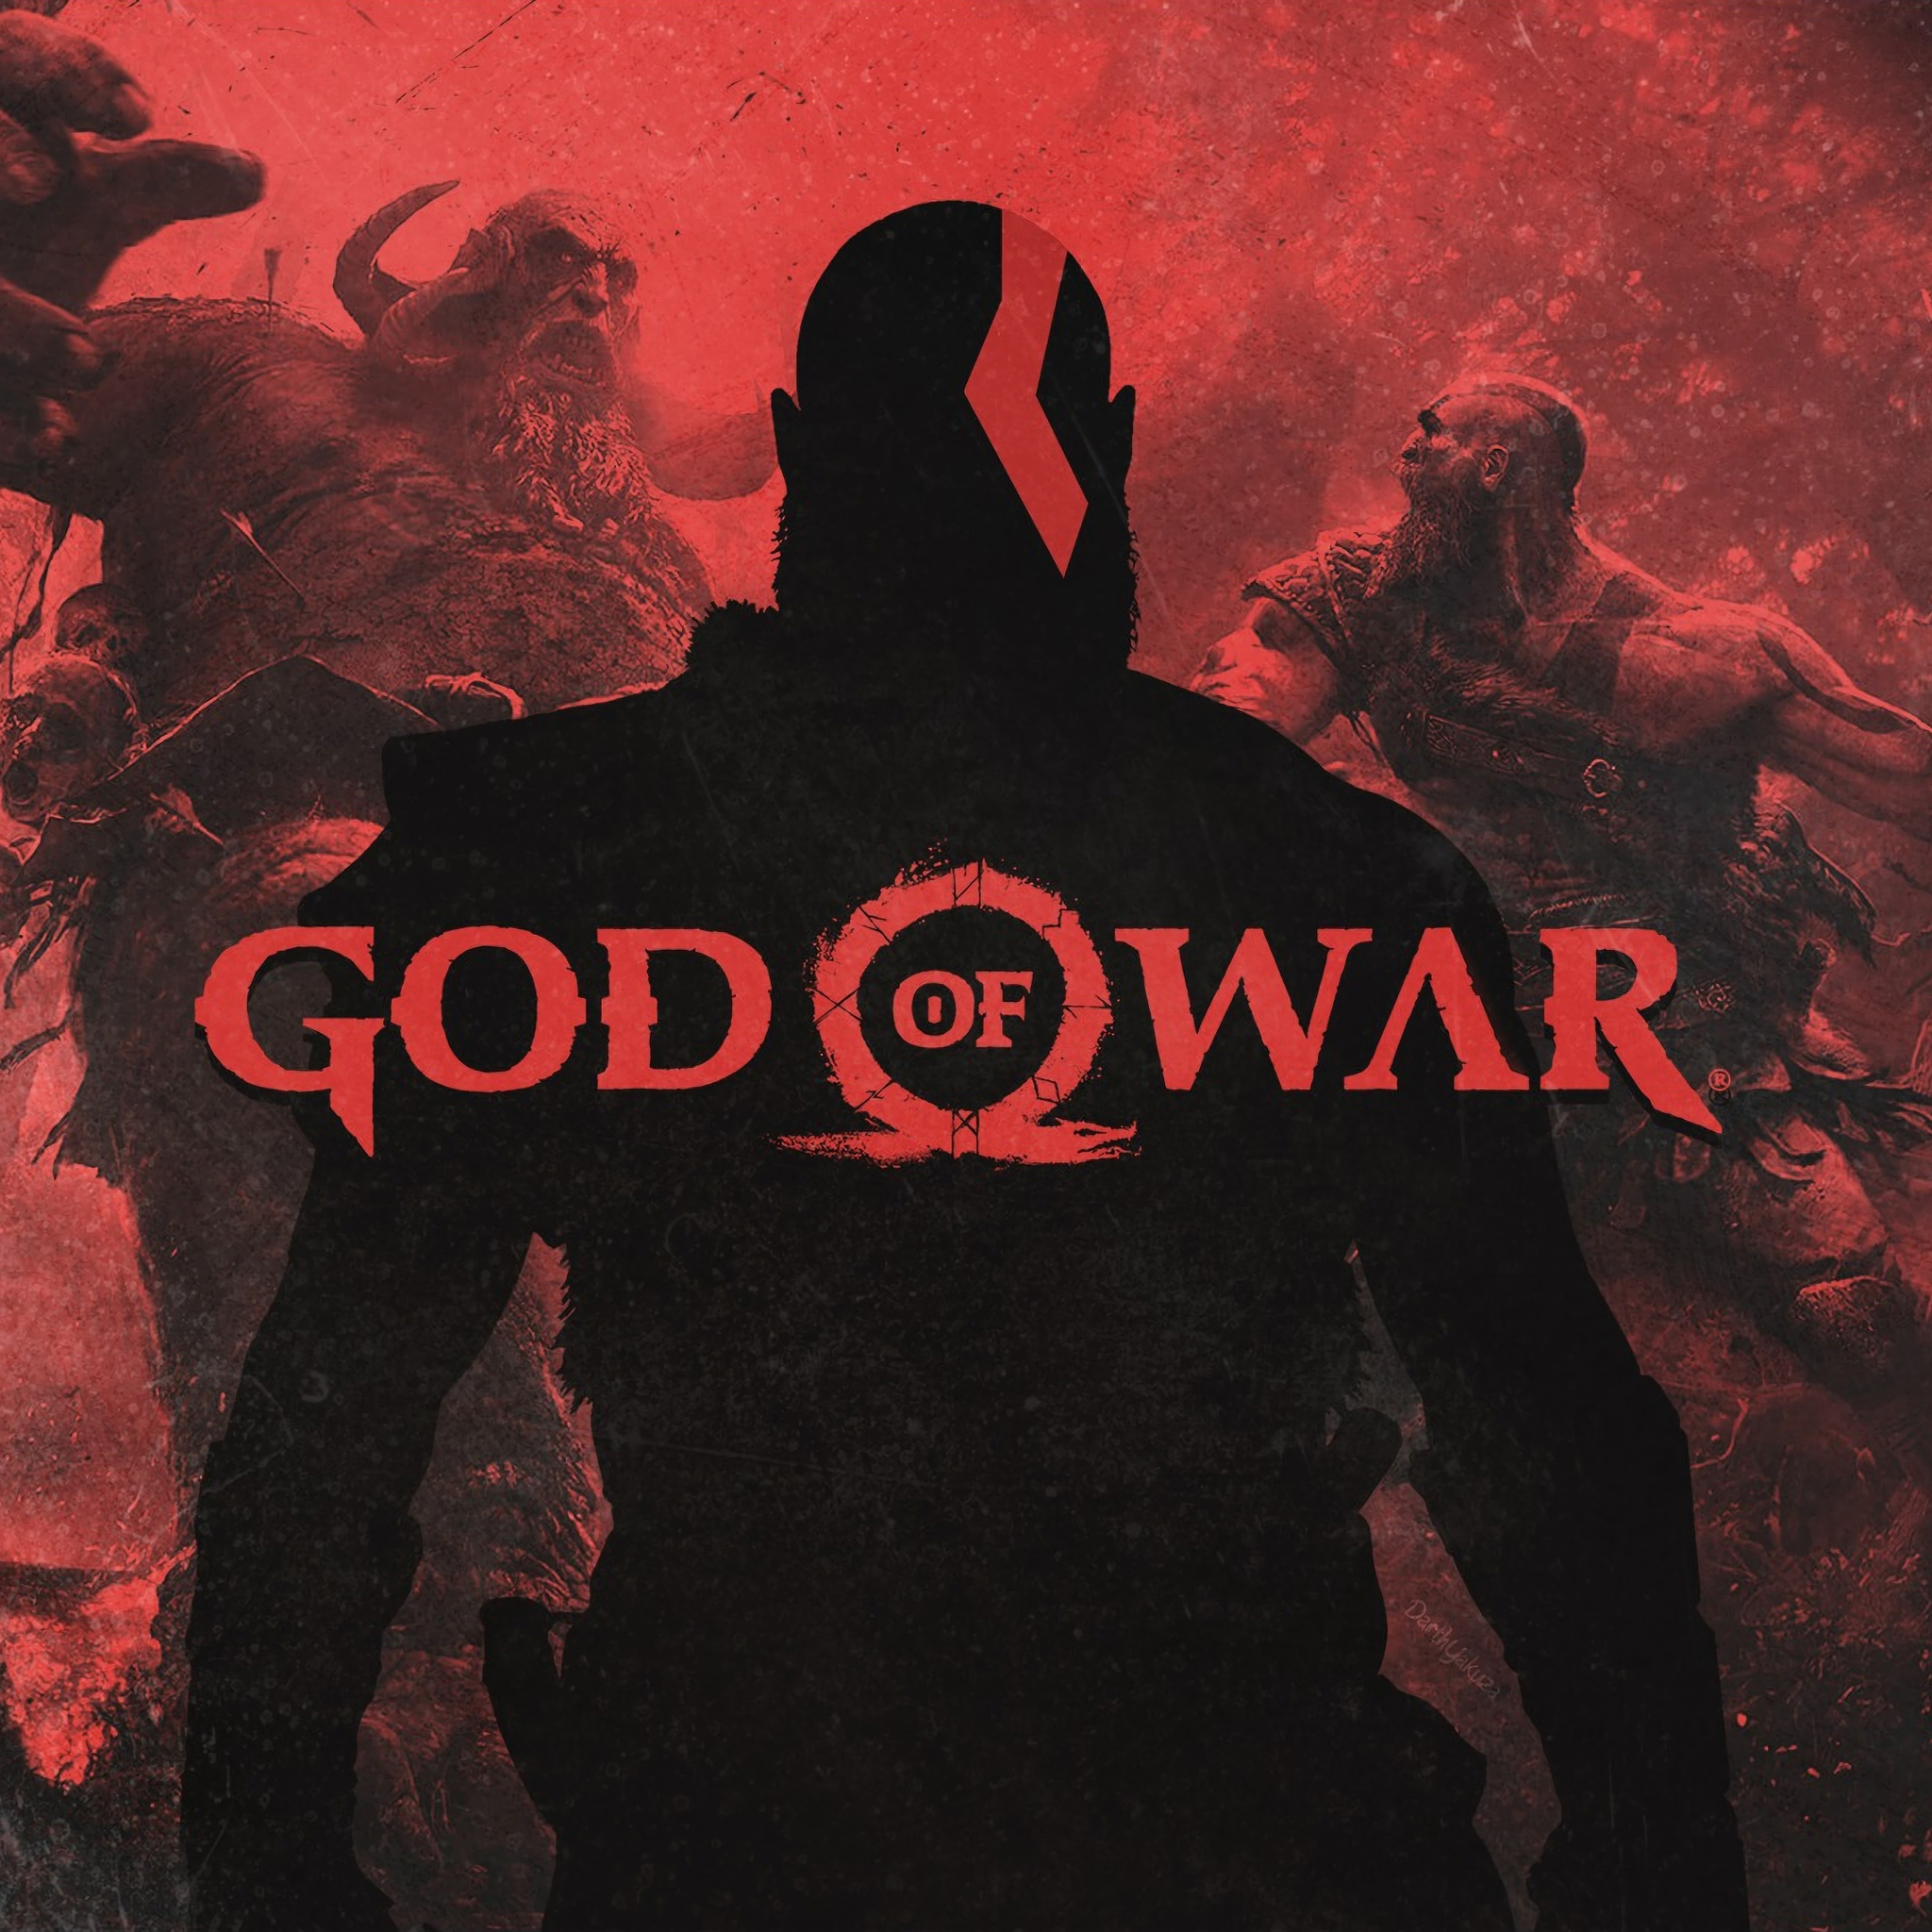 God Of War Hd Wallpaper For Android Download – Free Download Wallpaper